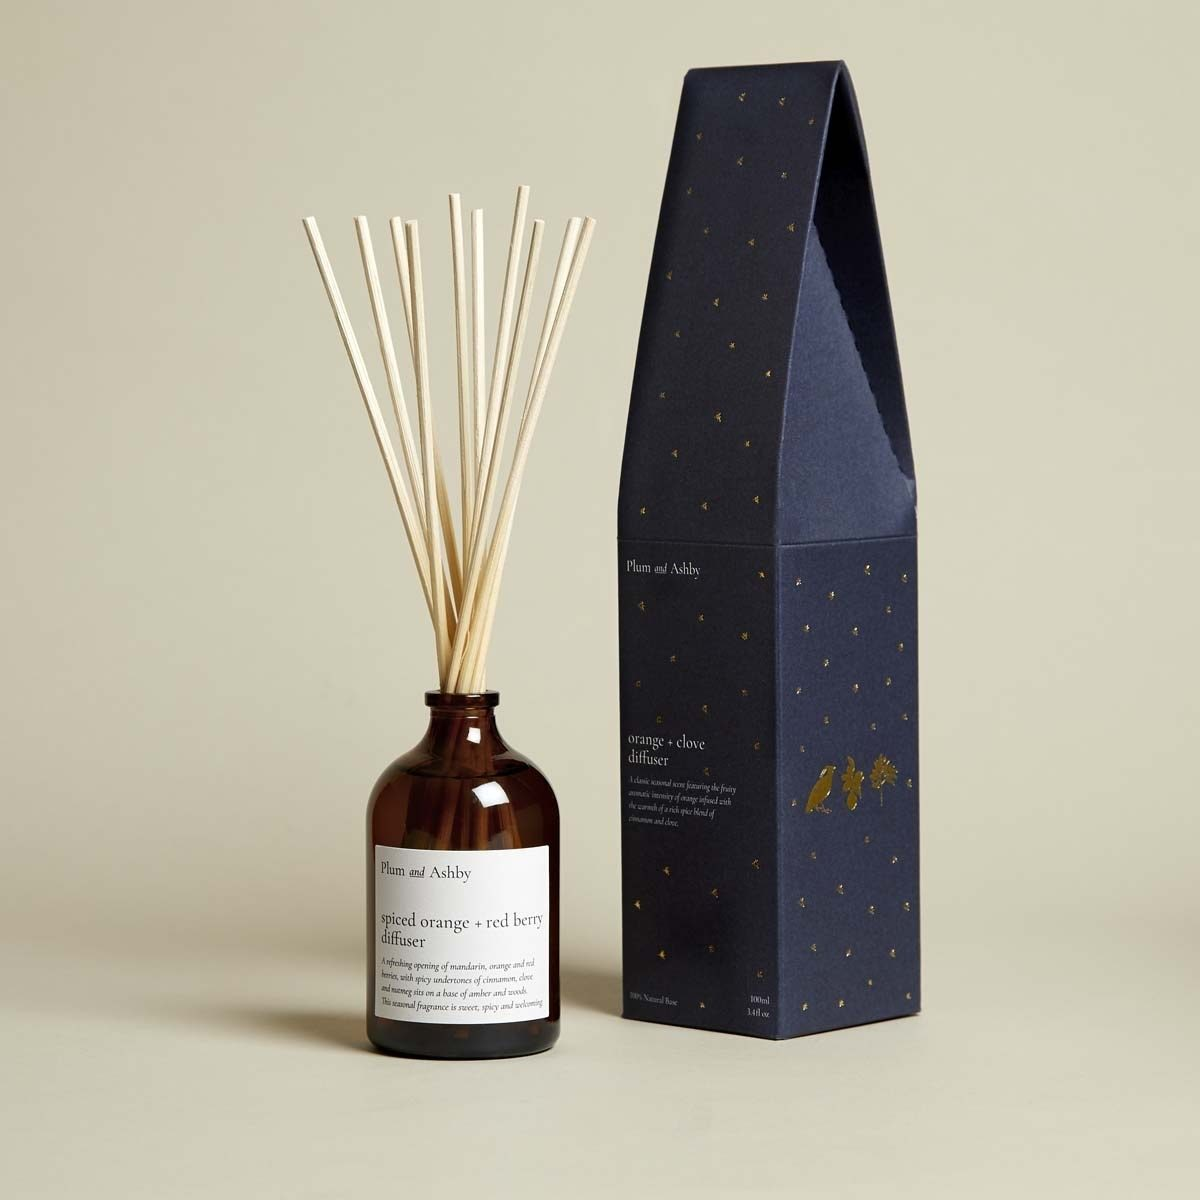 Spiced orange red berry diffuser